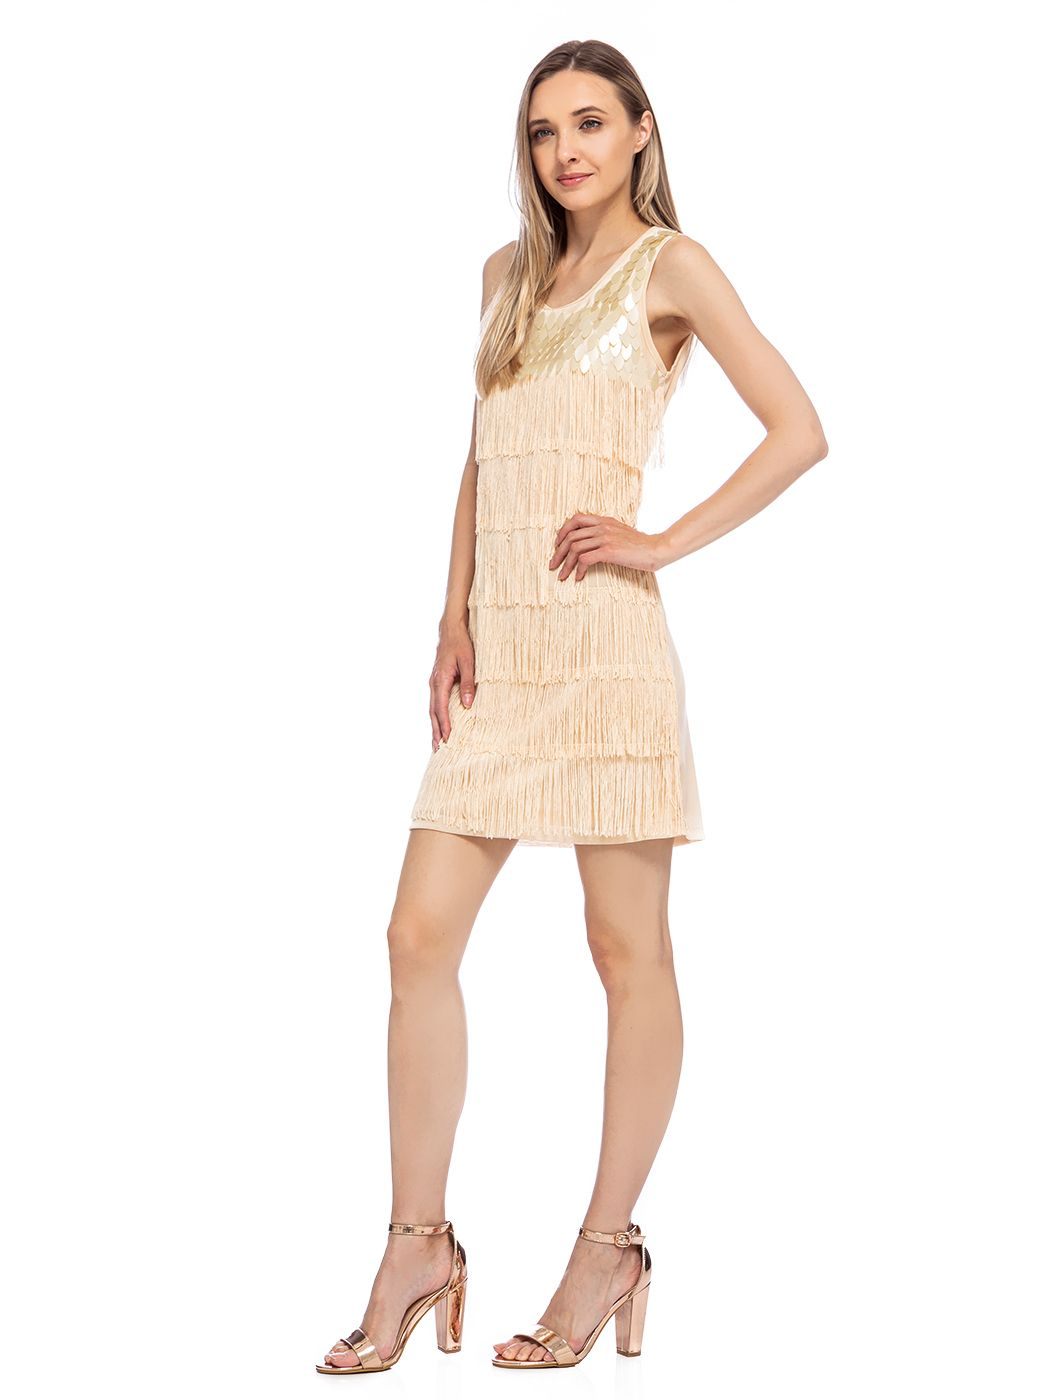 Feinuhan Women S 1920s Flapper Solid Color Fringed Sequin Cocktail Party Dress Walmart Com Flapper Inspired Dress Dresses Long Sweater Outfits [ 1400 x 1050 Pixel ]